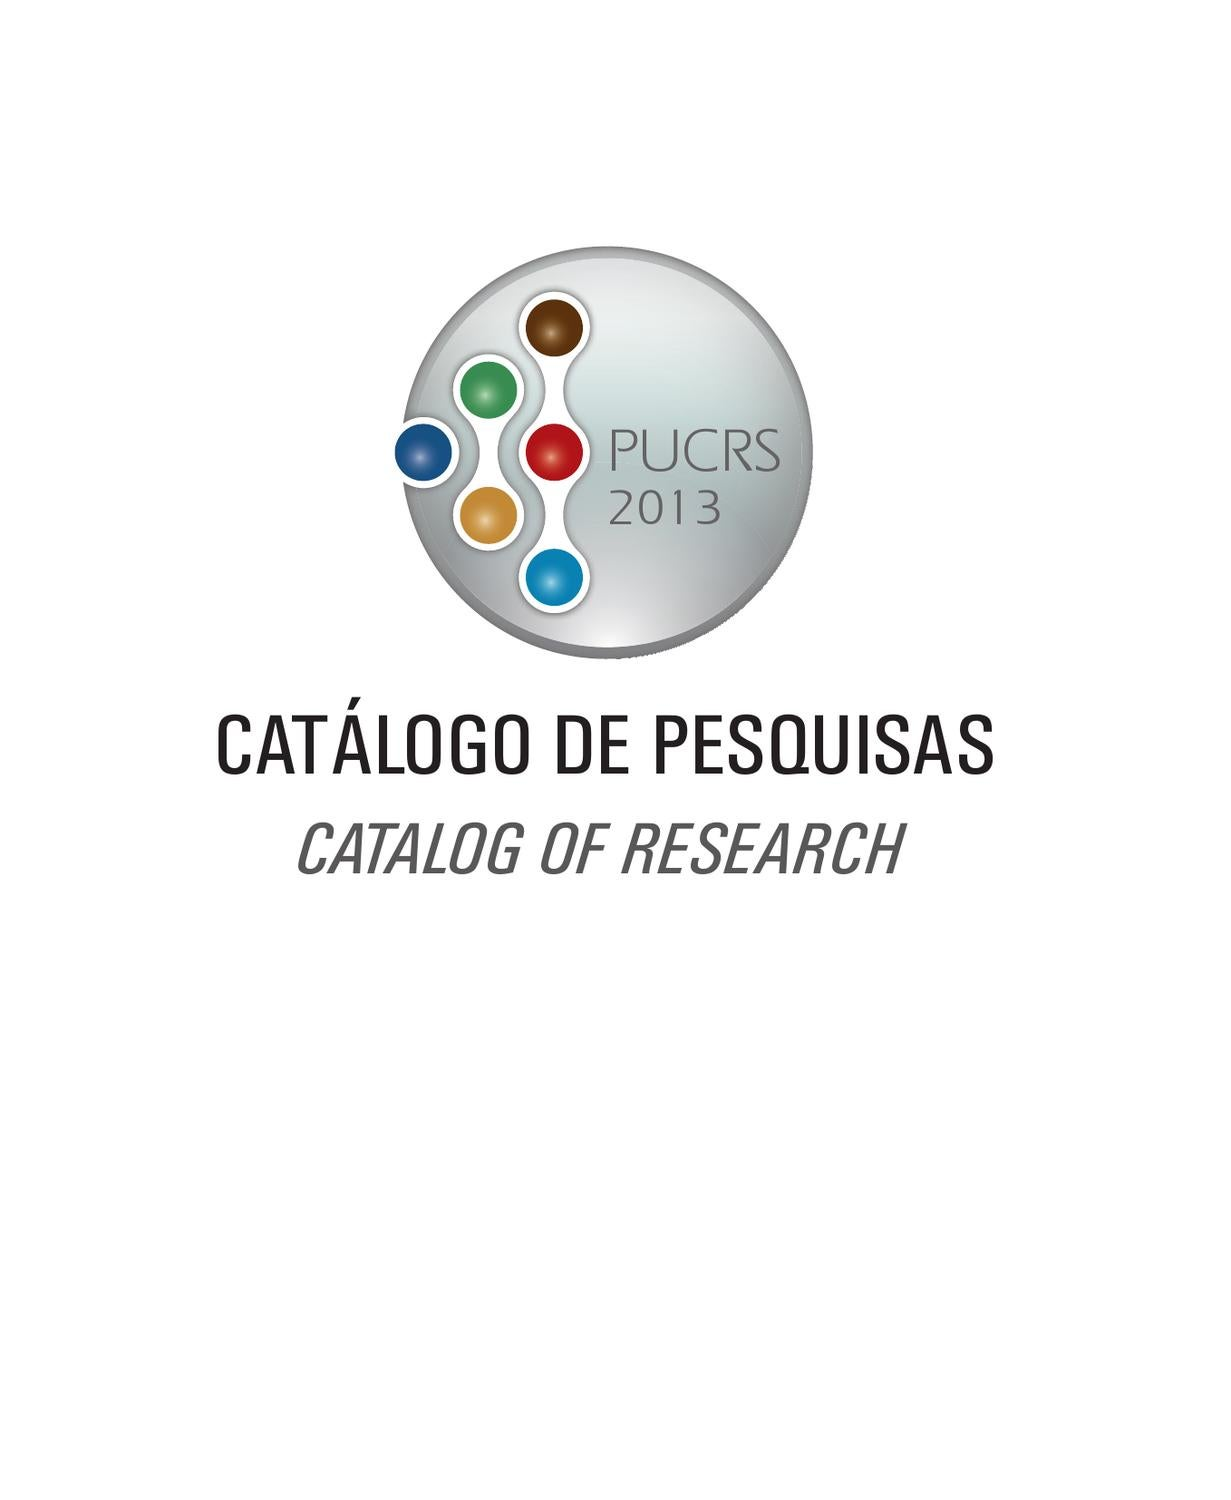 Catlogo de pesquisas 2013 pucrs by giovani domingos issuu fandeluxe Gallery